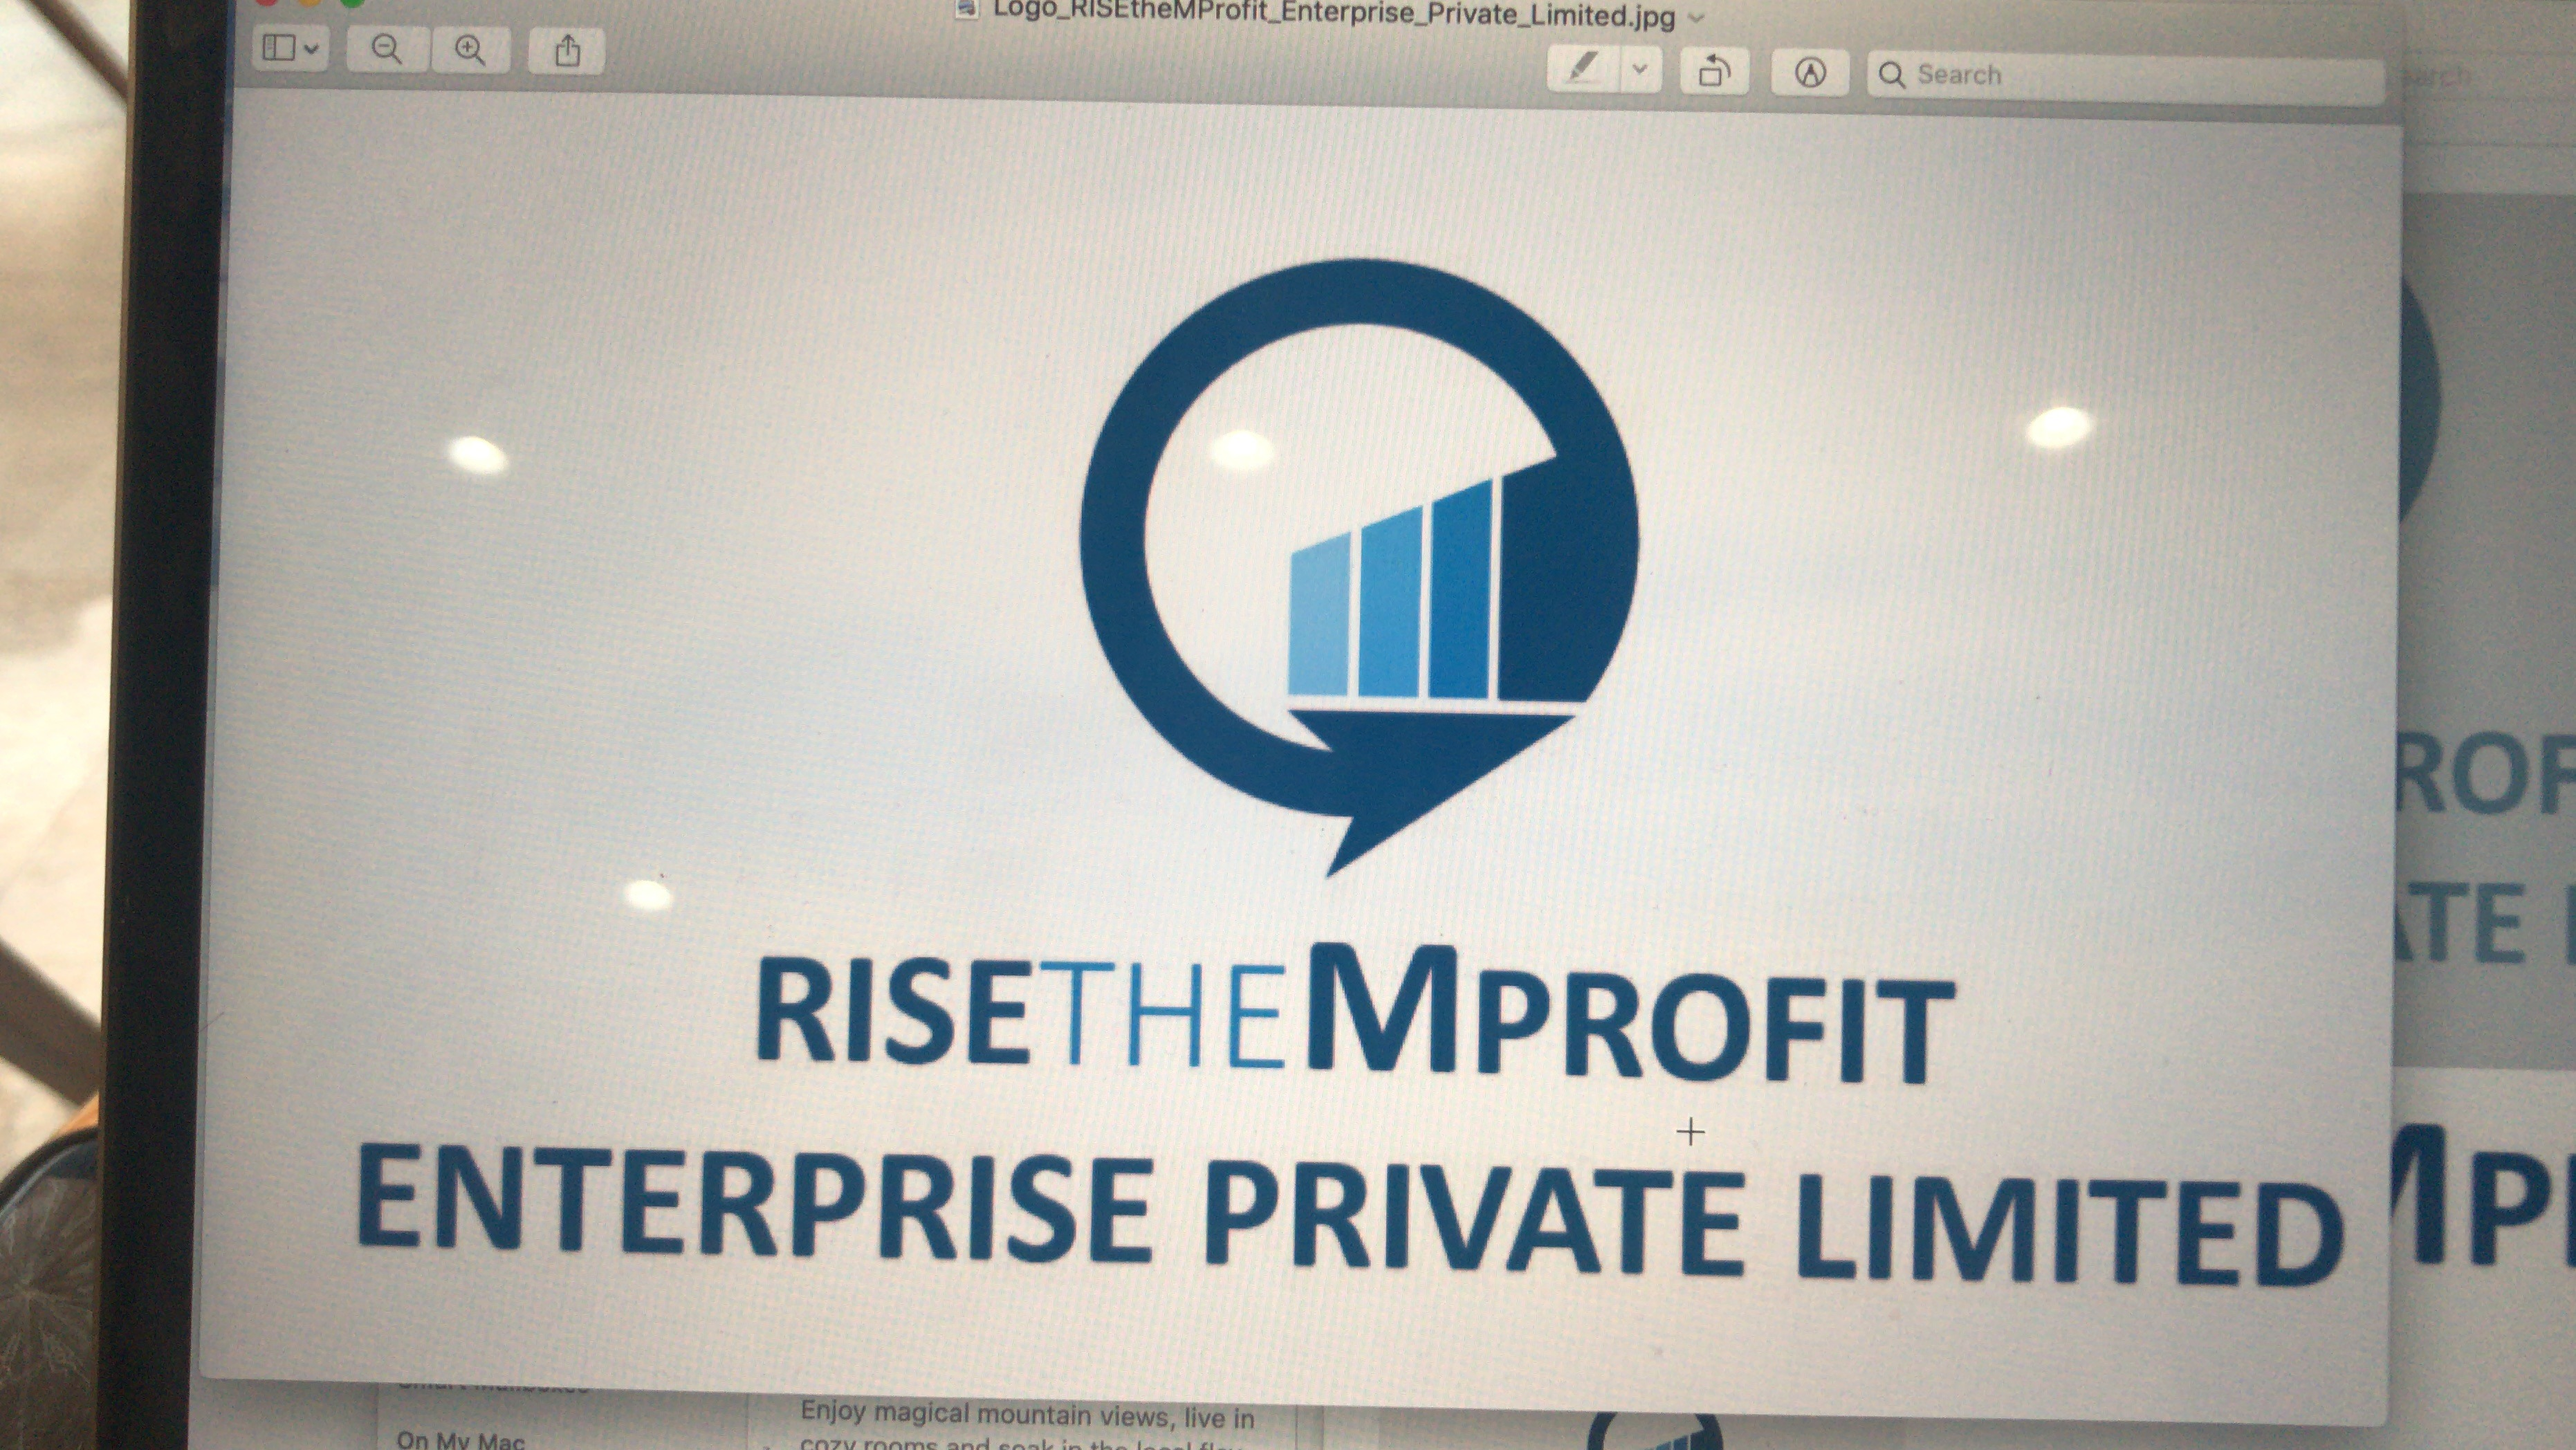 RISE THE M PROFIT ENTERPRISE PRIVATE LIMITED